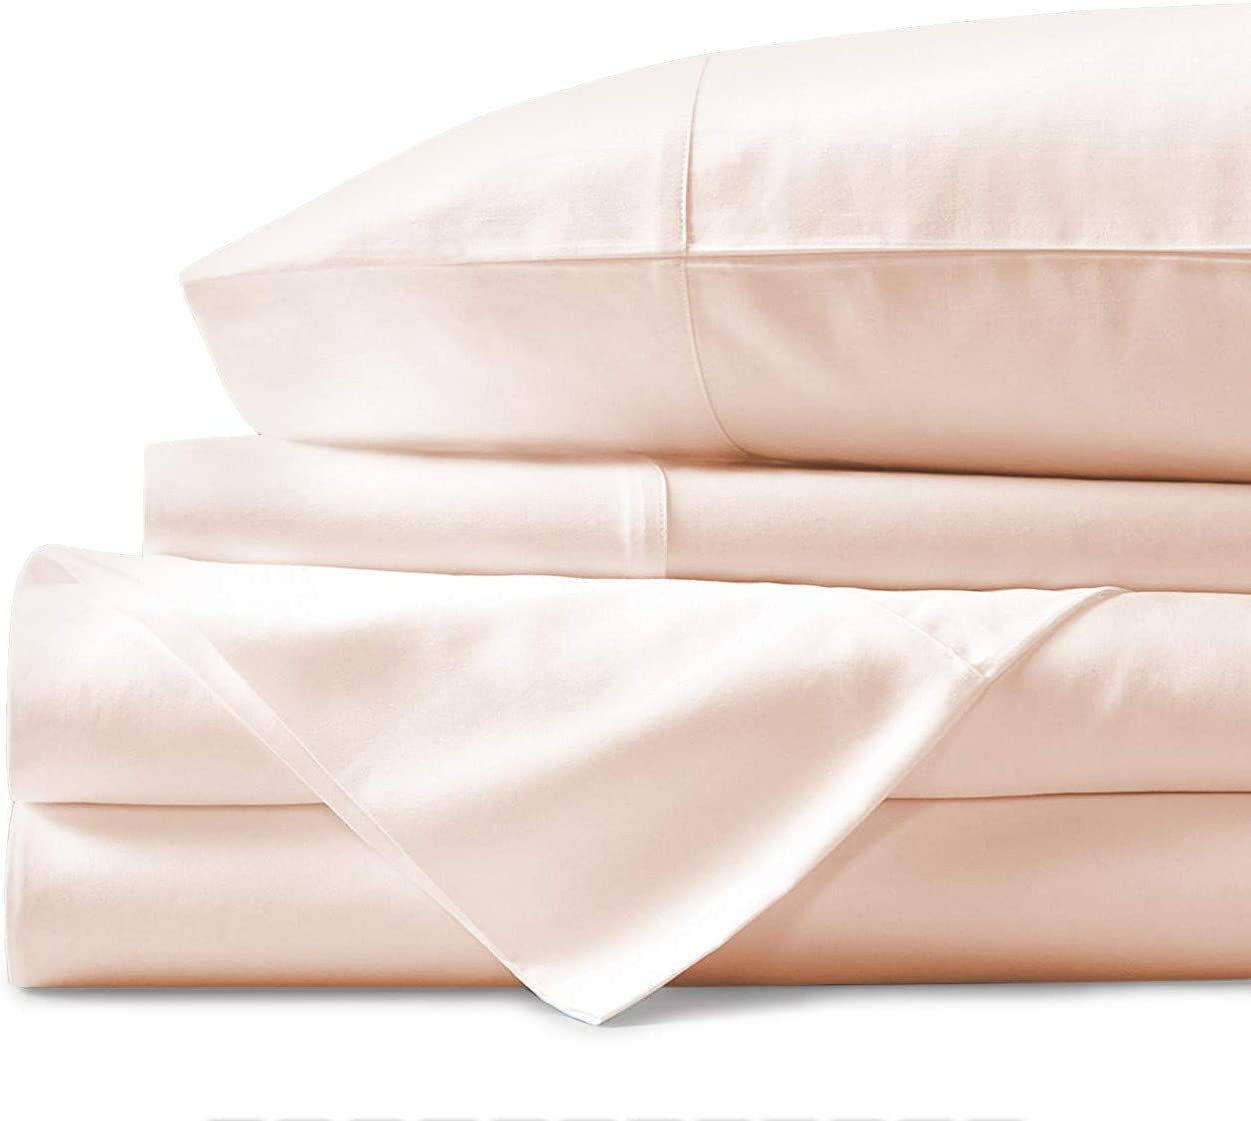 Mayfair Linen 100% Egyptian Cotton Sheets, Ivory California King Sheets Set, 800 Thread Count Long Staple Cotton, Sateen Weave for Soft and Silky Feel, Fits Mattress Upto 18'' DEEP Pocket